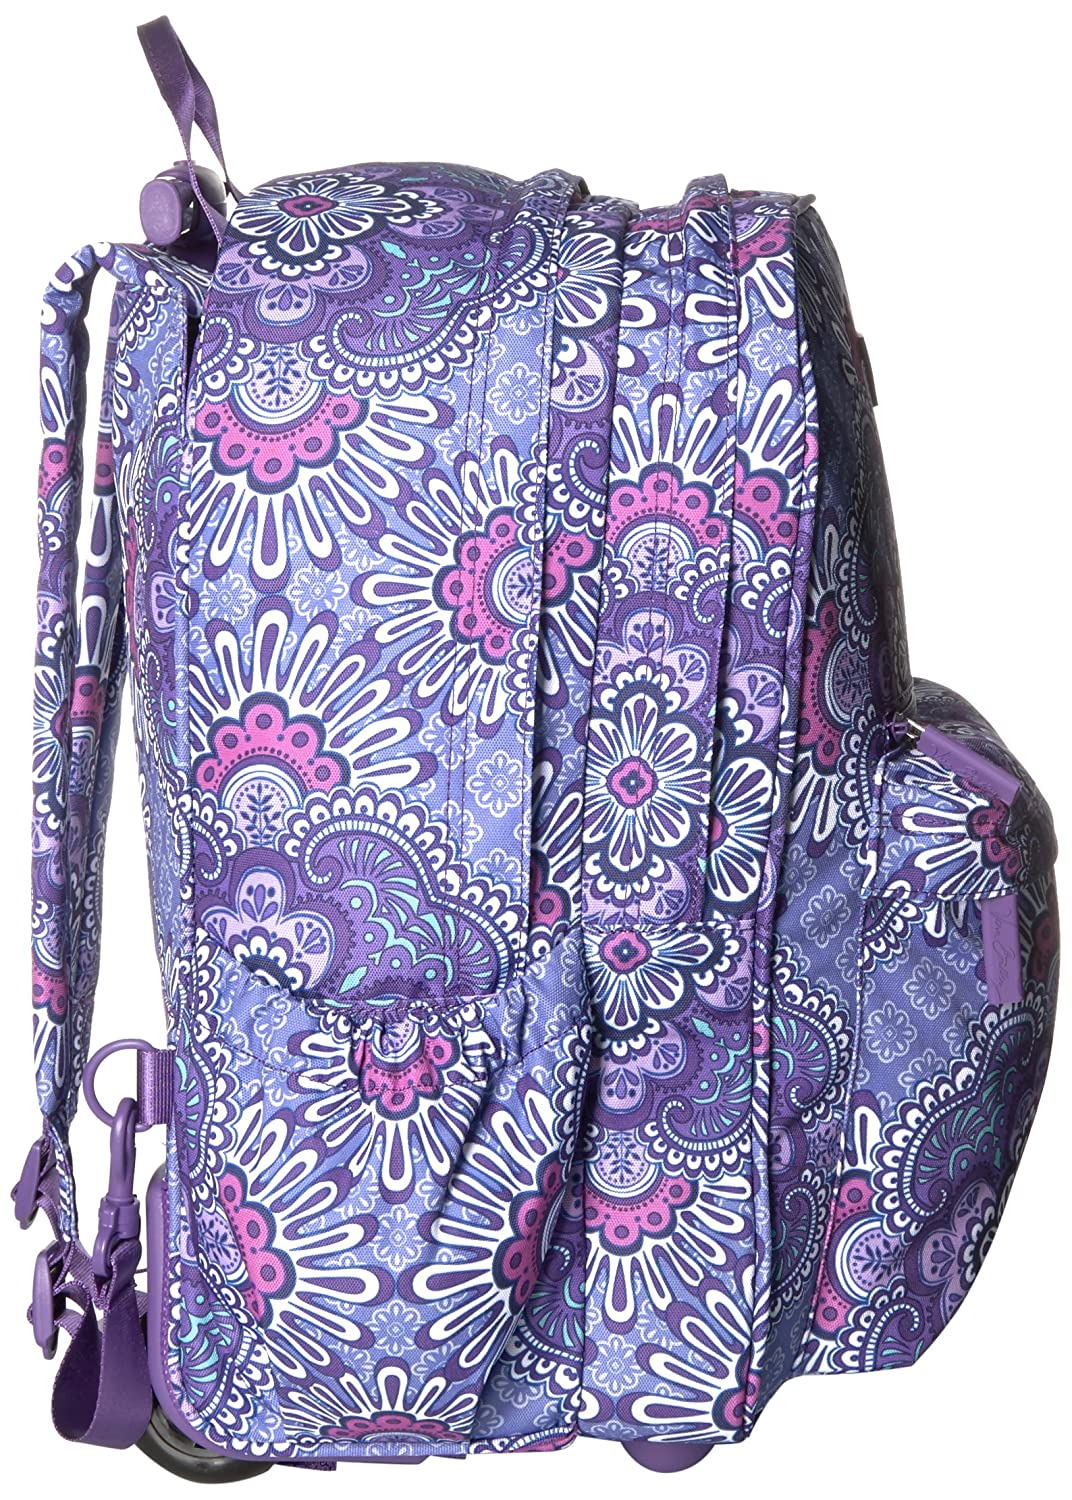 dd460300718d Com Vera Bradley Women S Lighten Up Rolling Backpack Lilac Tapestry Shoes